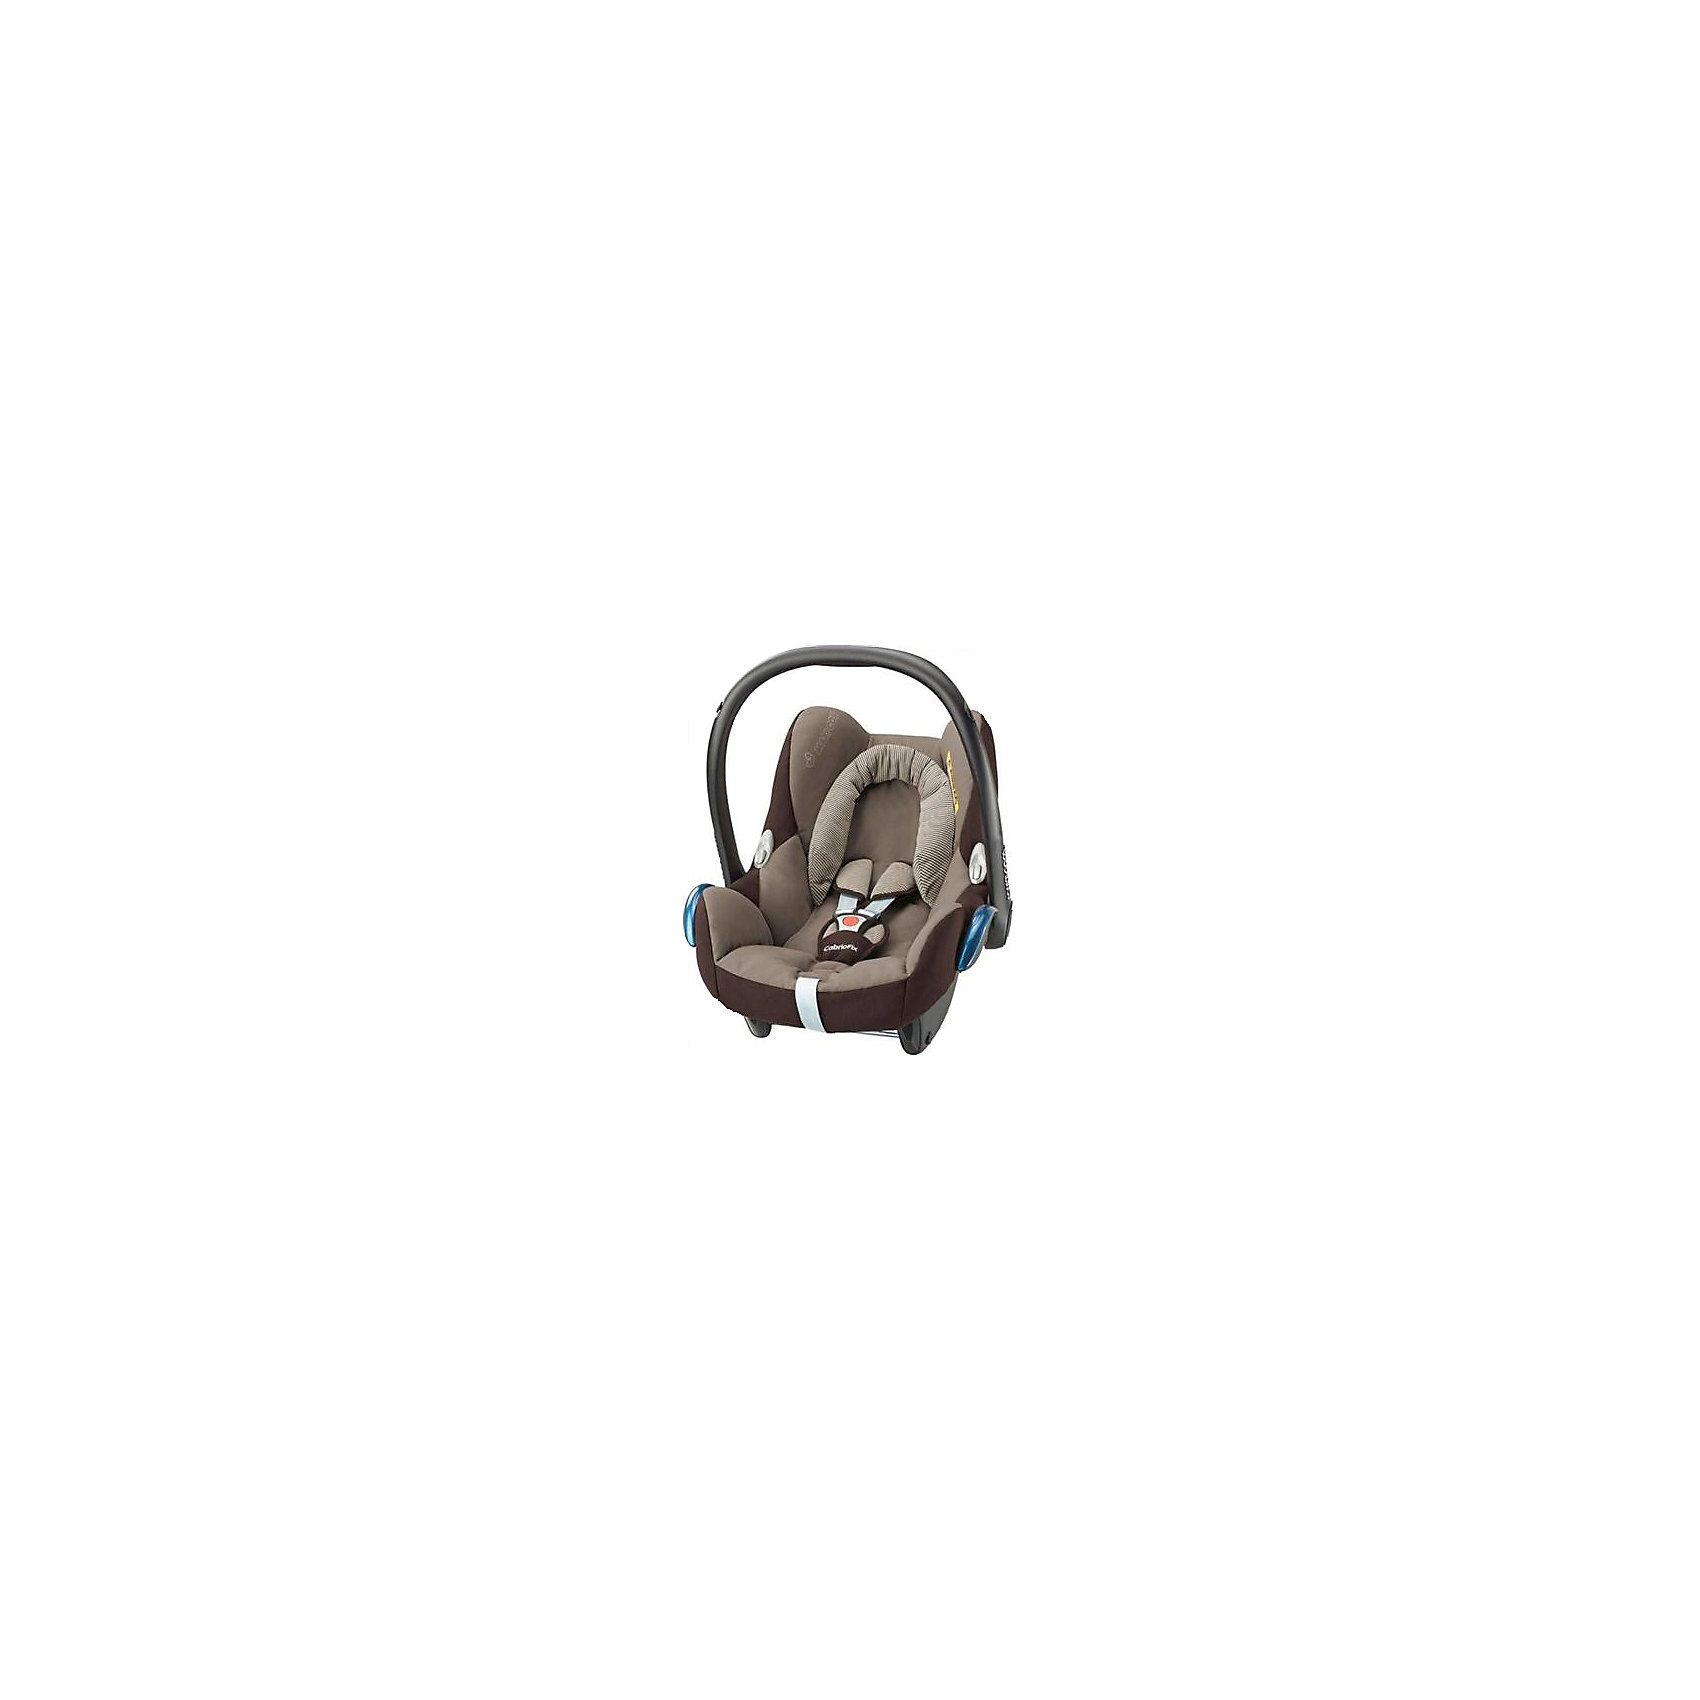 Maxi Cosi Автокресло Cabrio Fix EARTH BROWN 0-13 кг., Maxi-Cosi, maxi cosi автокресло cabrio fix